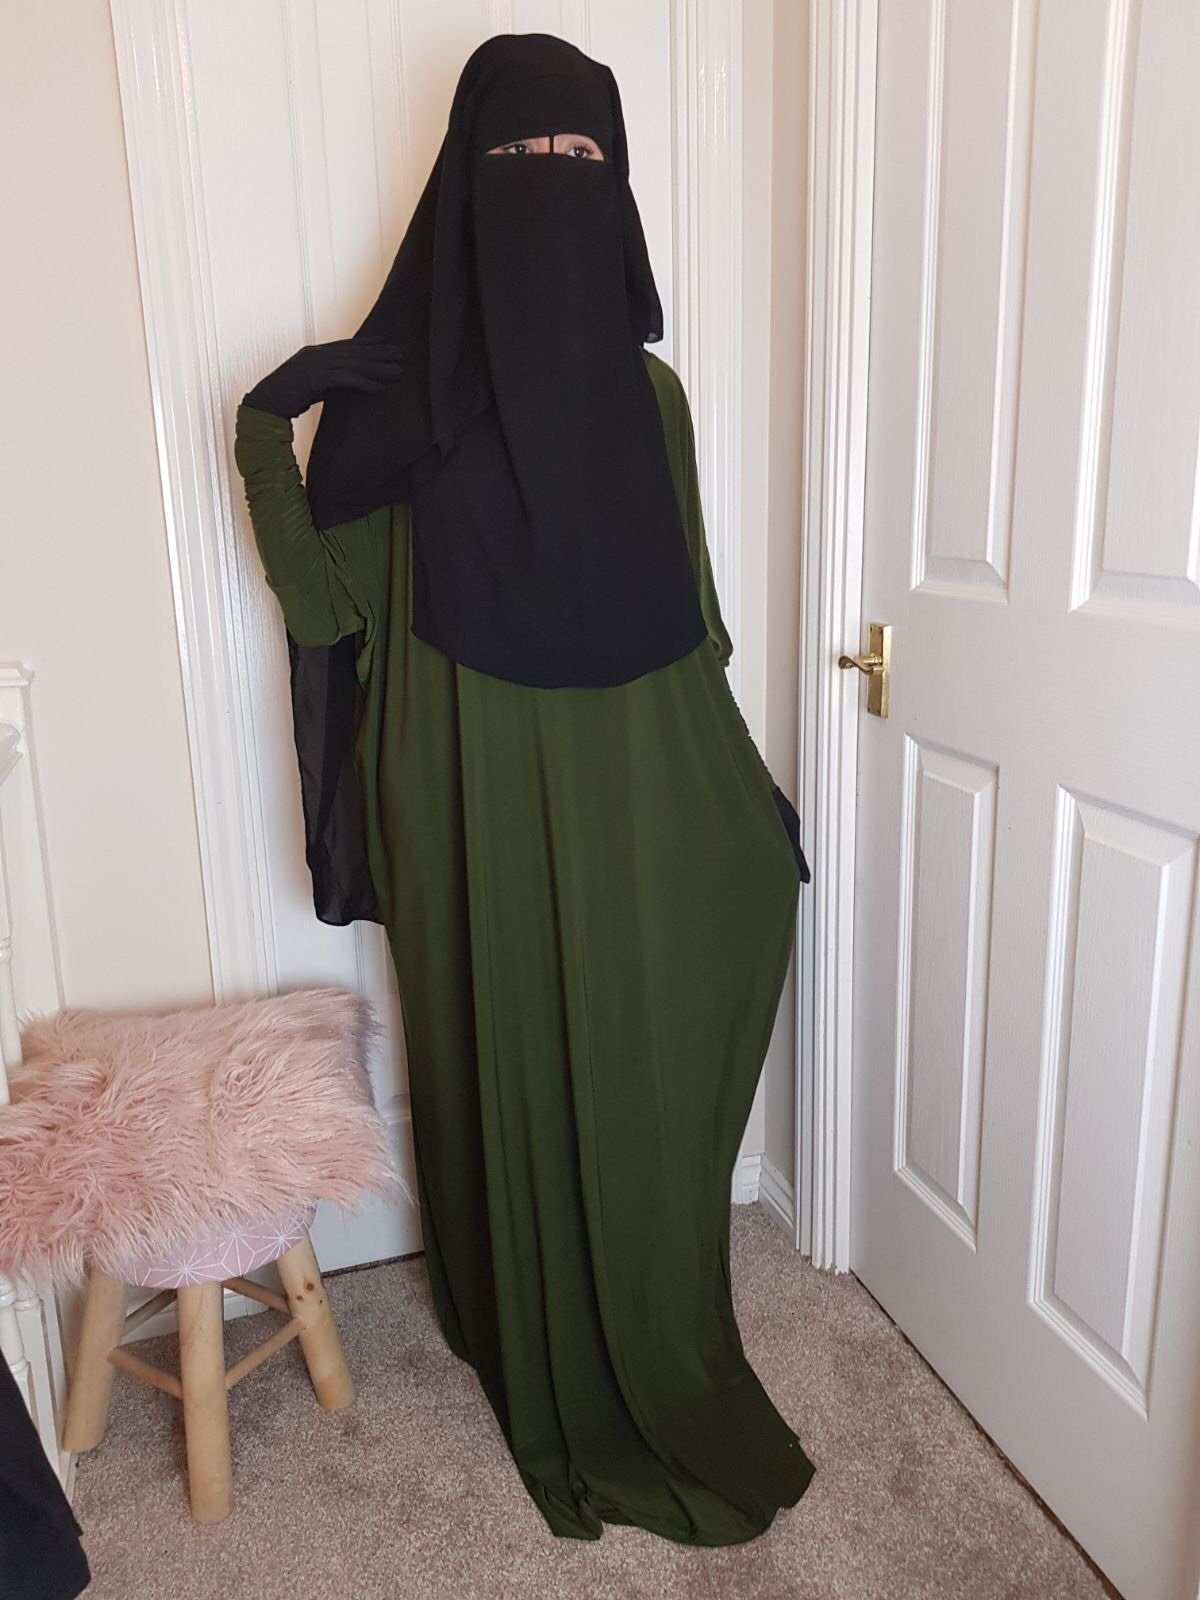 NIQAB SUTRA RYAD 3 layers rounded shape